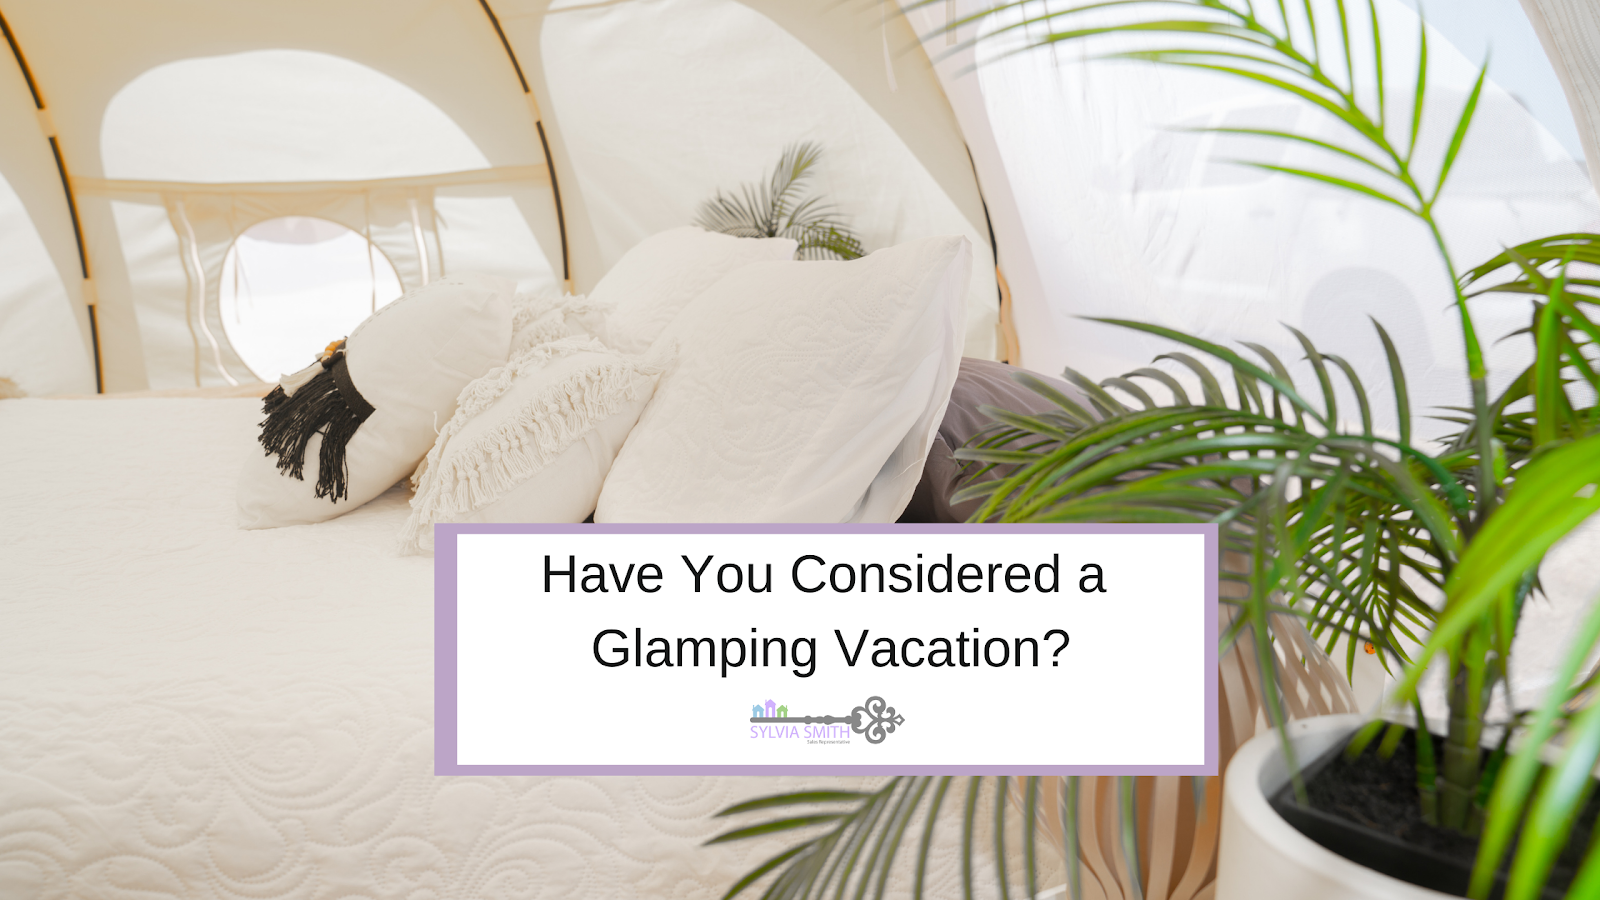 Have You Considered a Glamping Vacation?